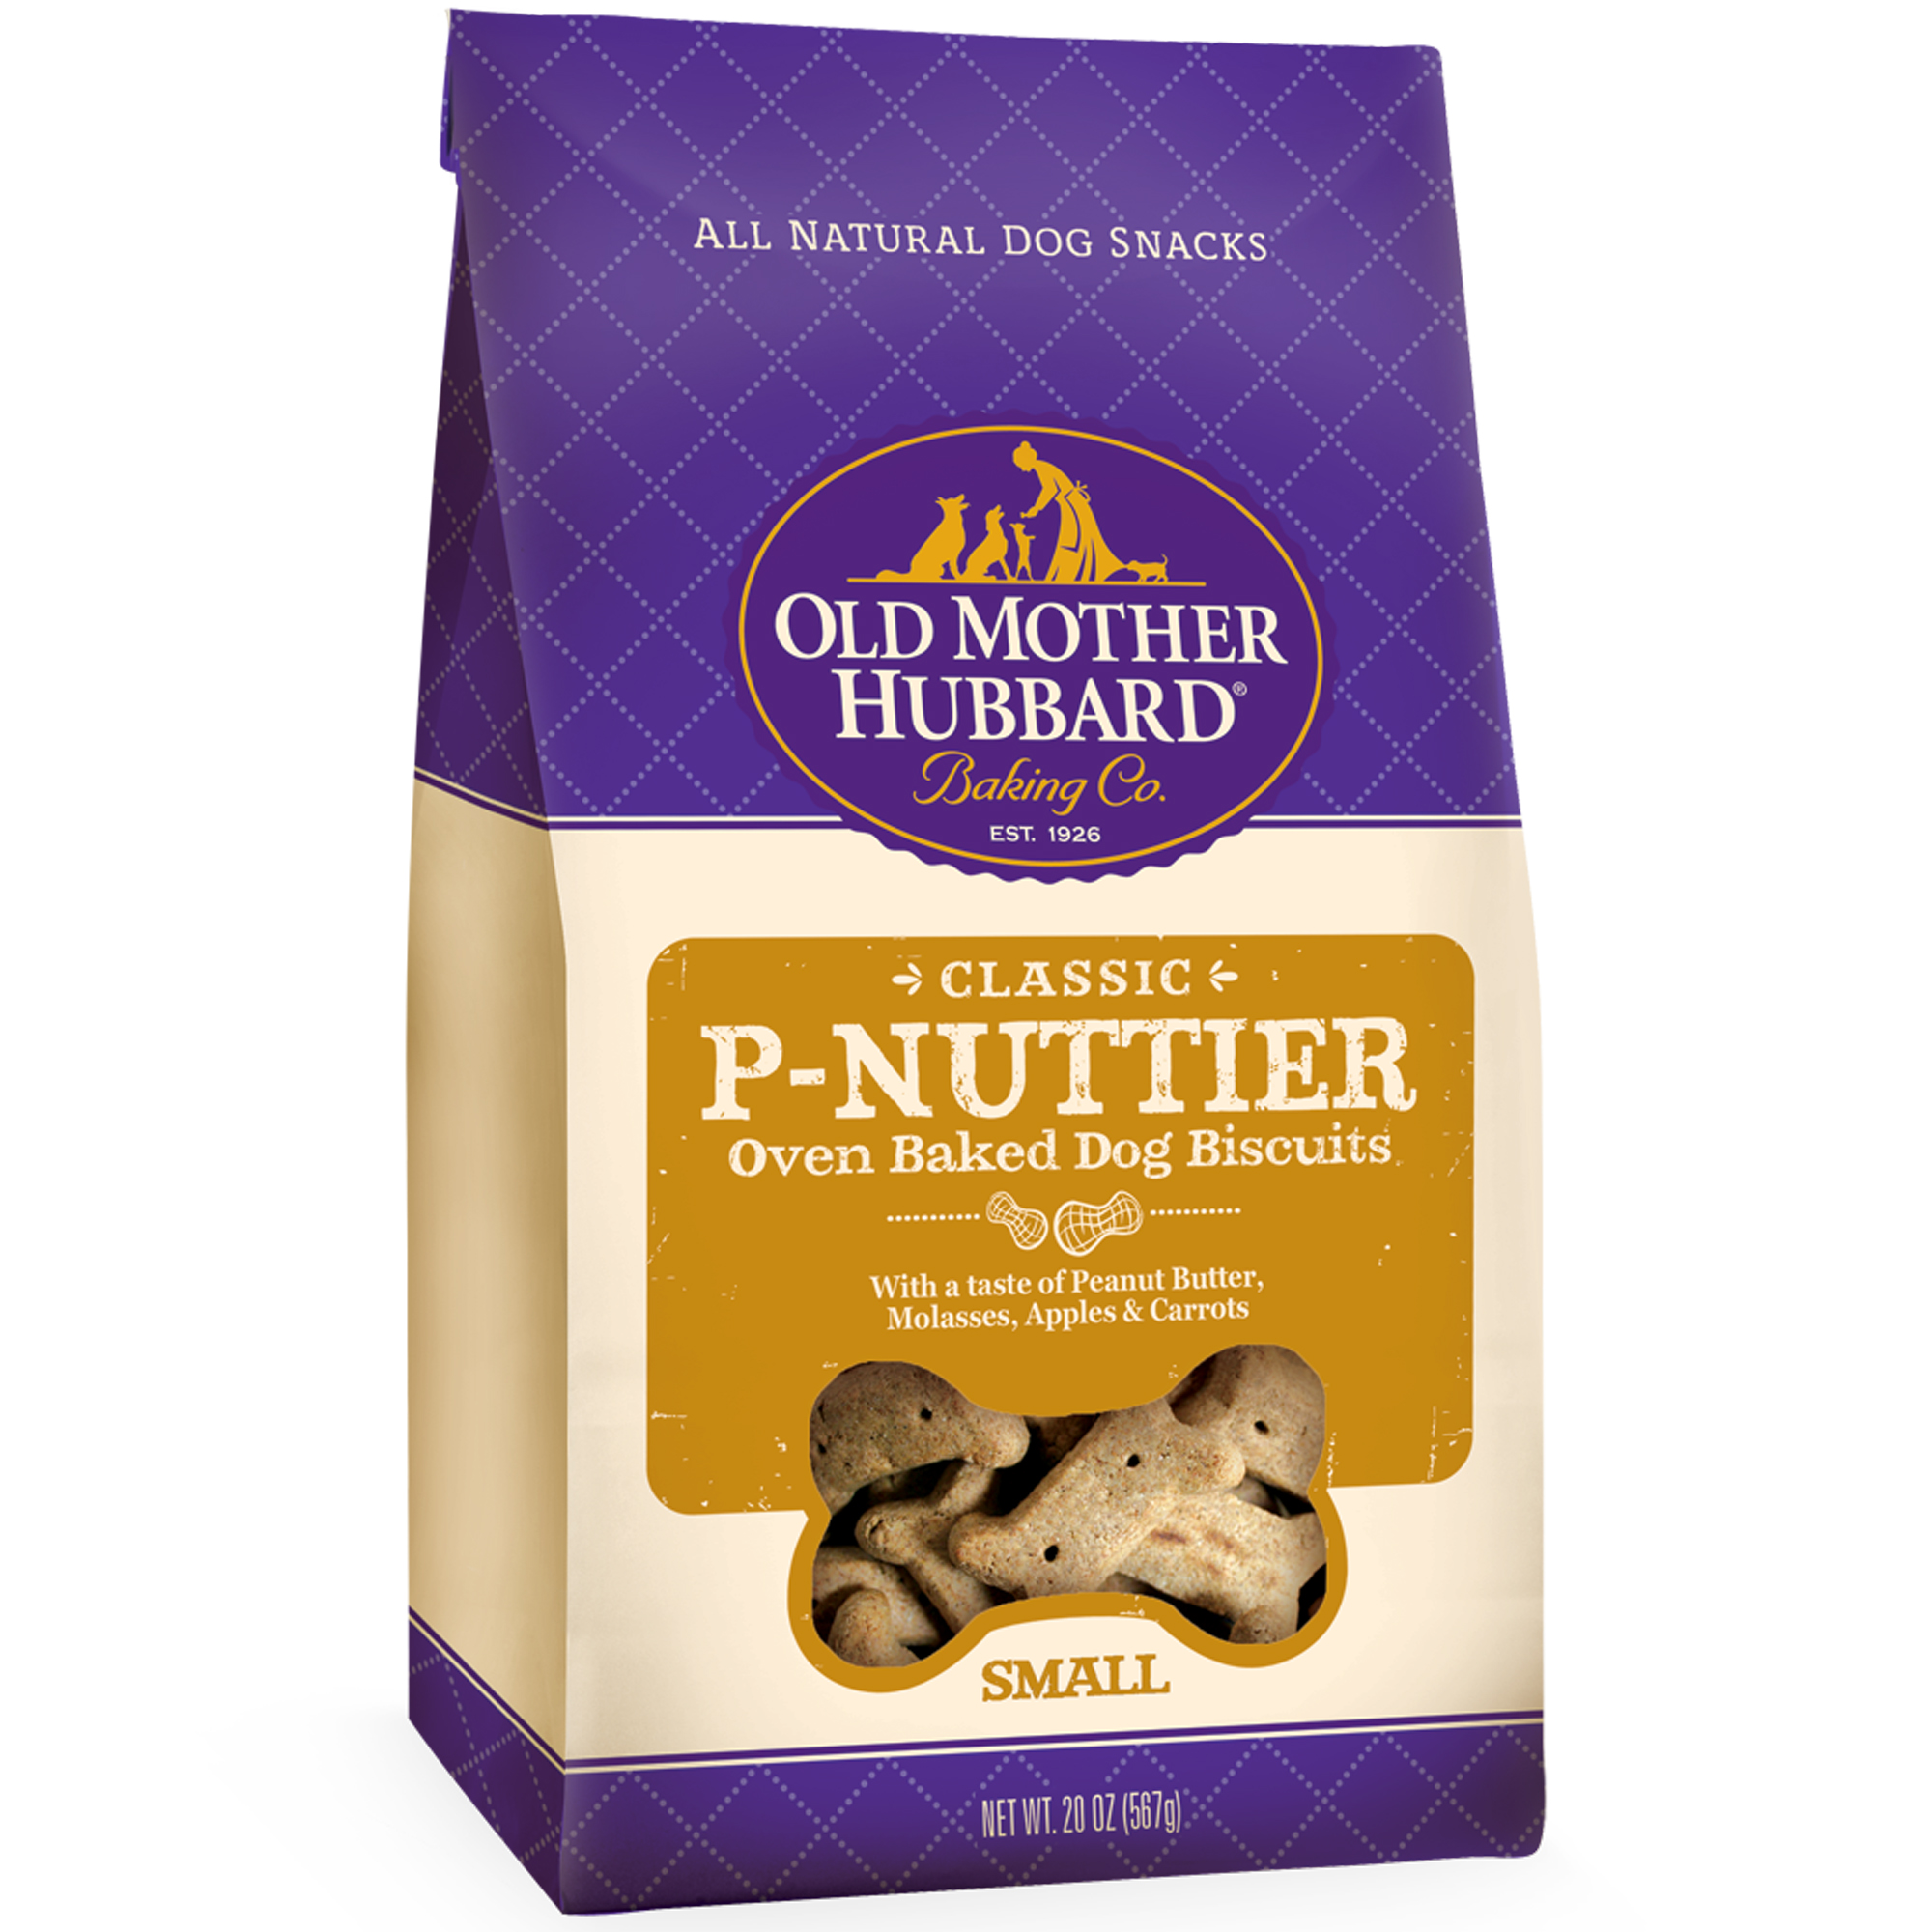 Old Mother Hubbard Classic P-Nuttier Small Peanut Butter Dog Treats, 20 Oz